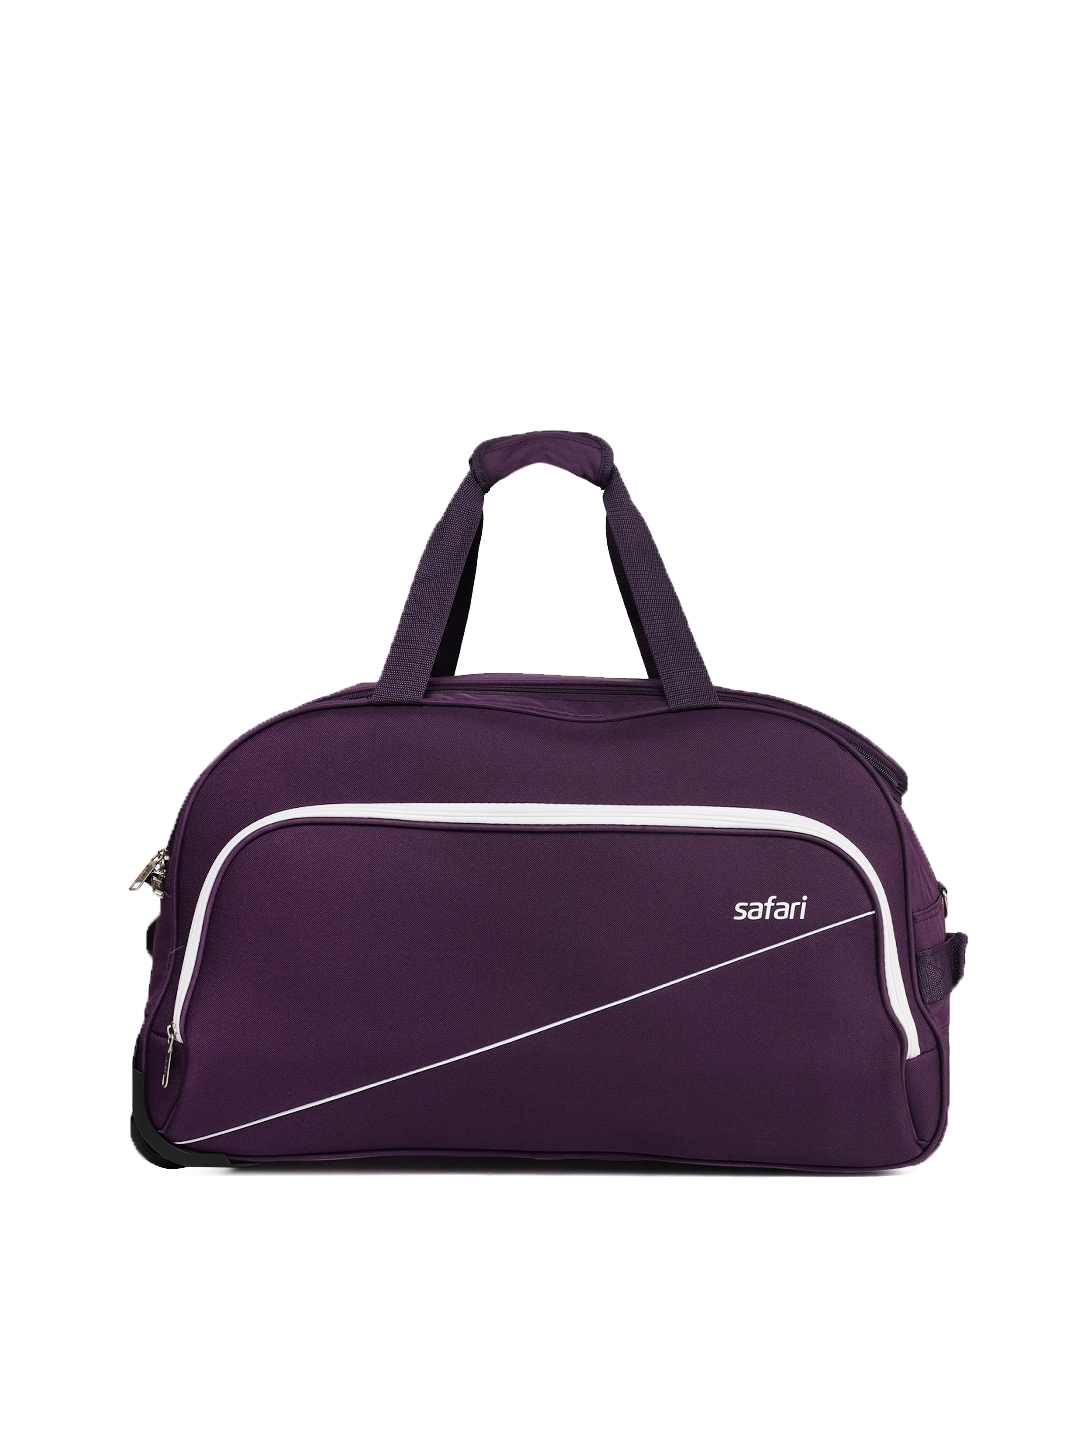 9d9532e4d3 Duffle Bags - Buy Branded Duffle Bags Online in India